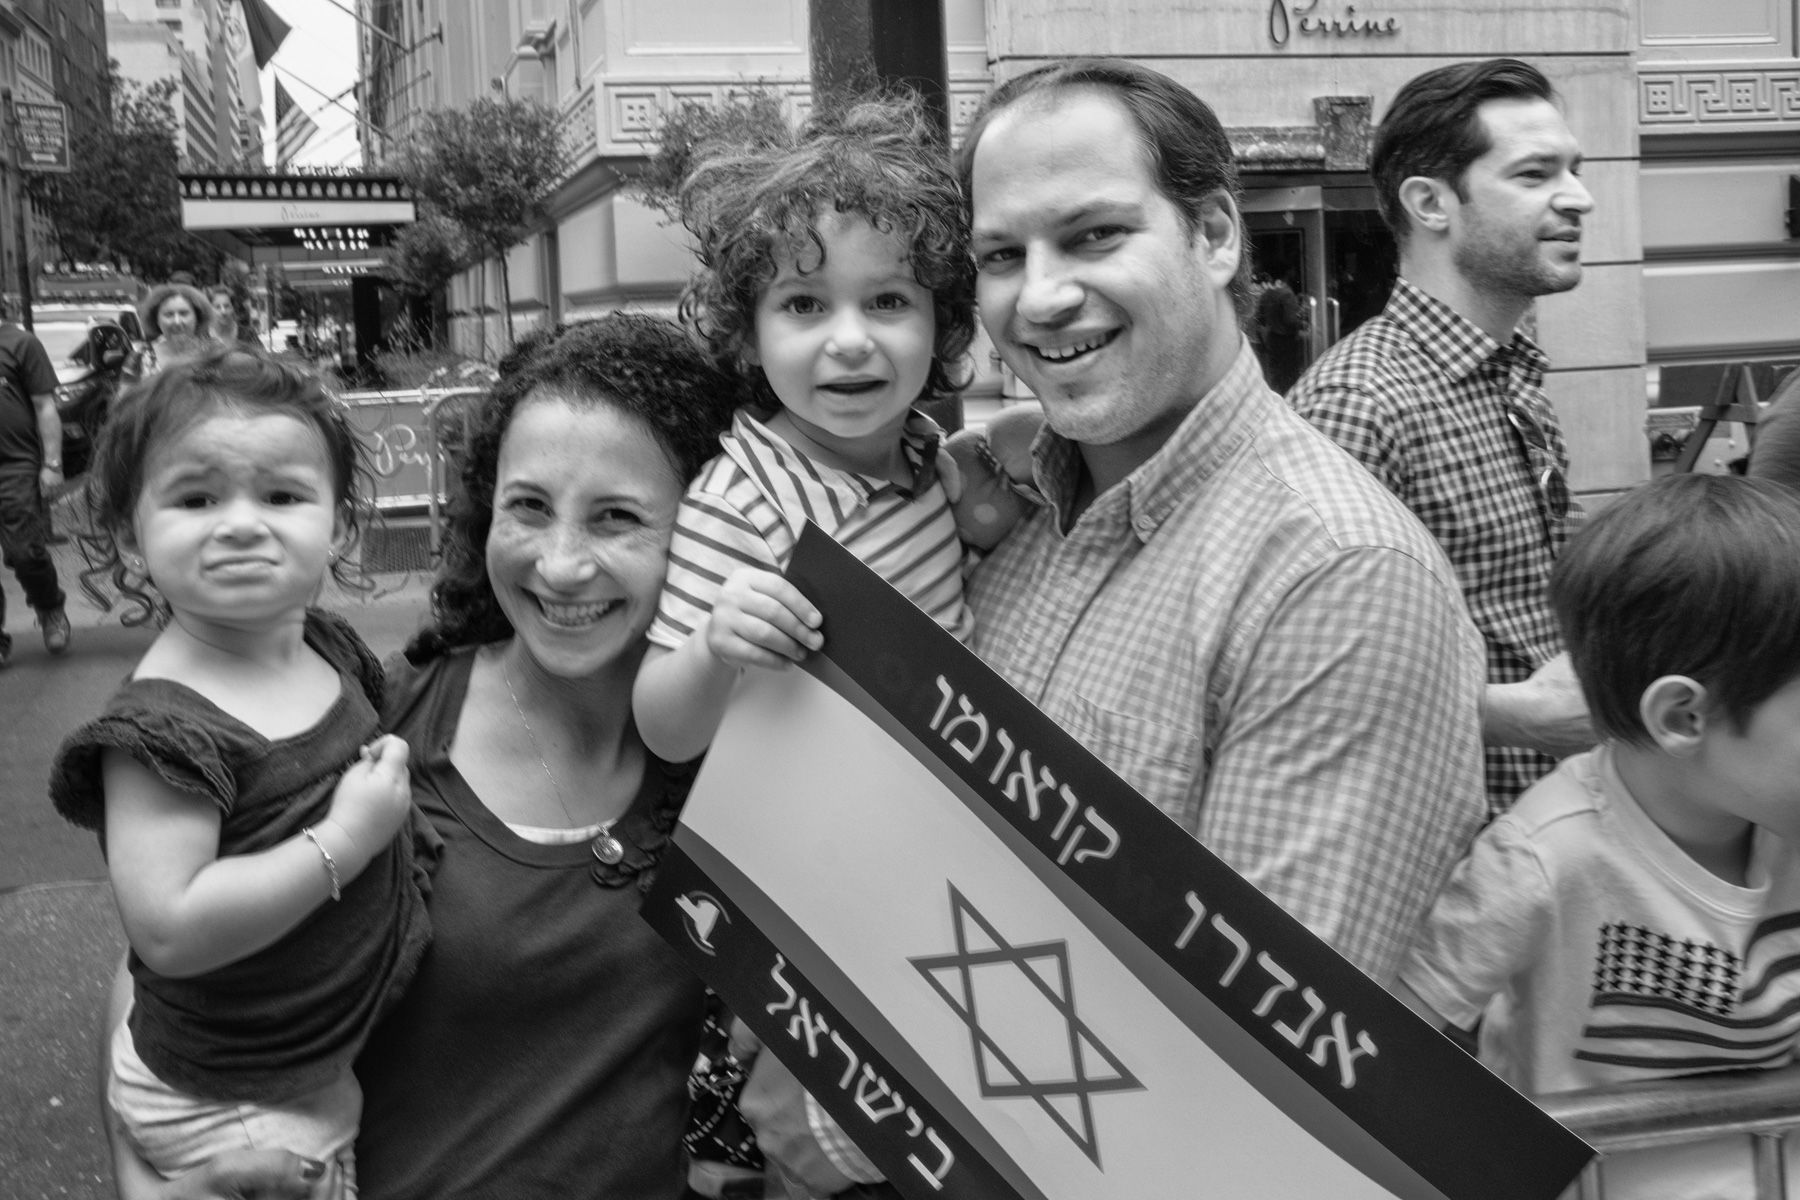 Israel Parade, New York City 06/04/17